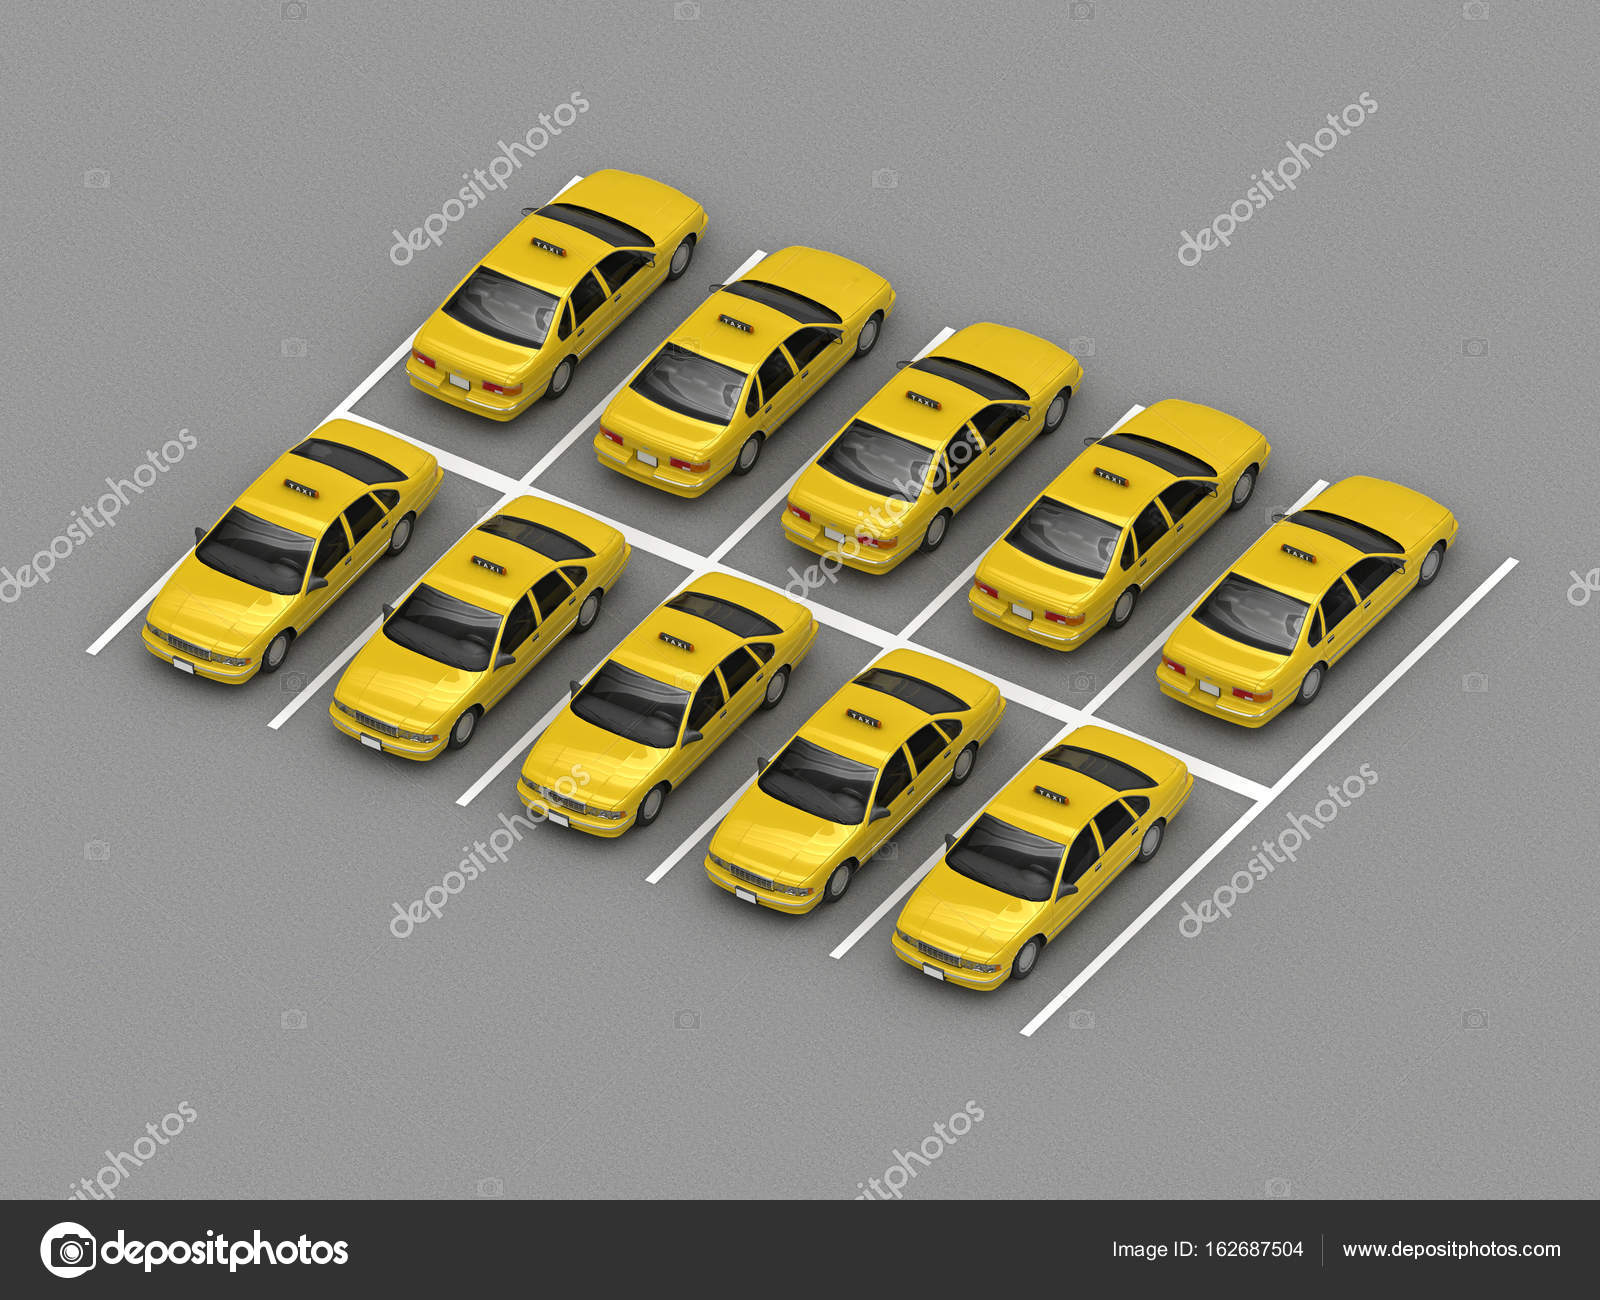 taxi car parking Orthographic view — Stock Photo © petrovv #162687504